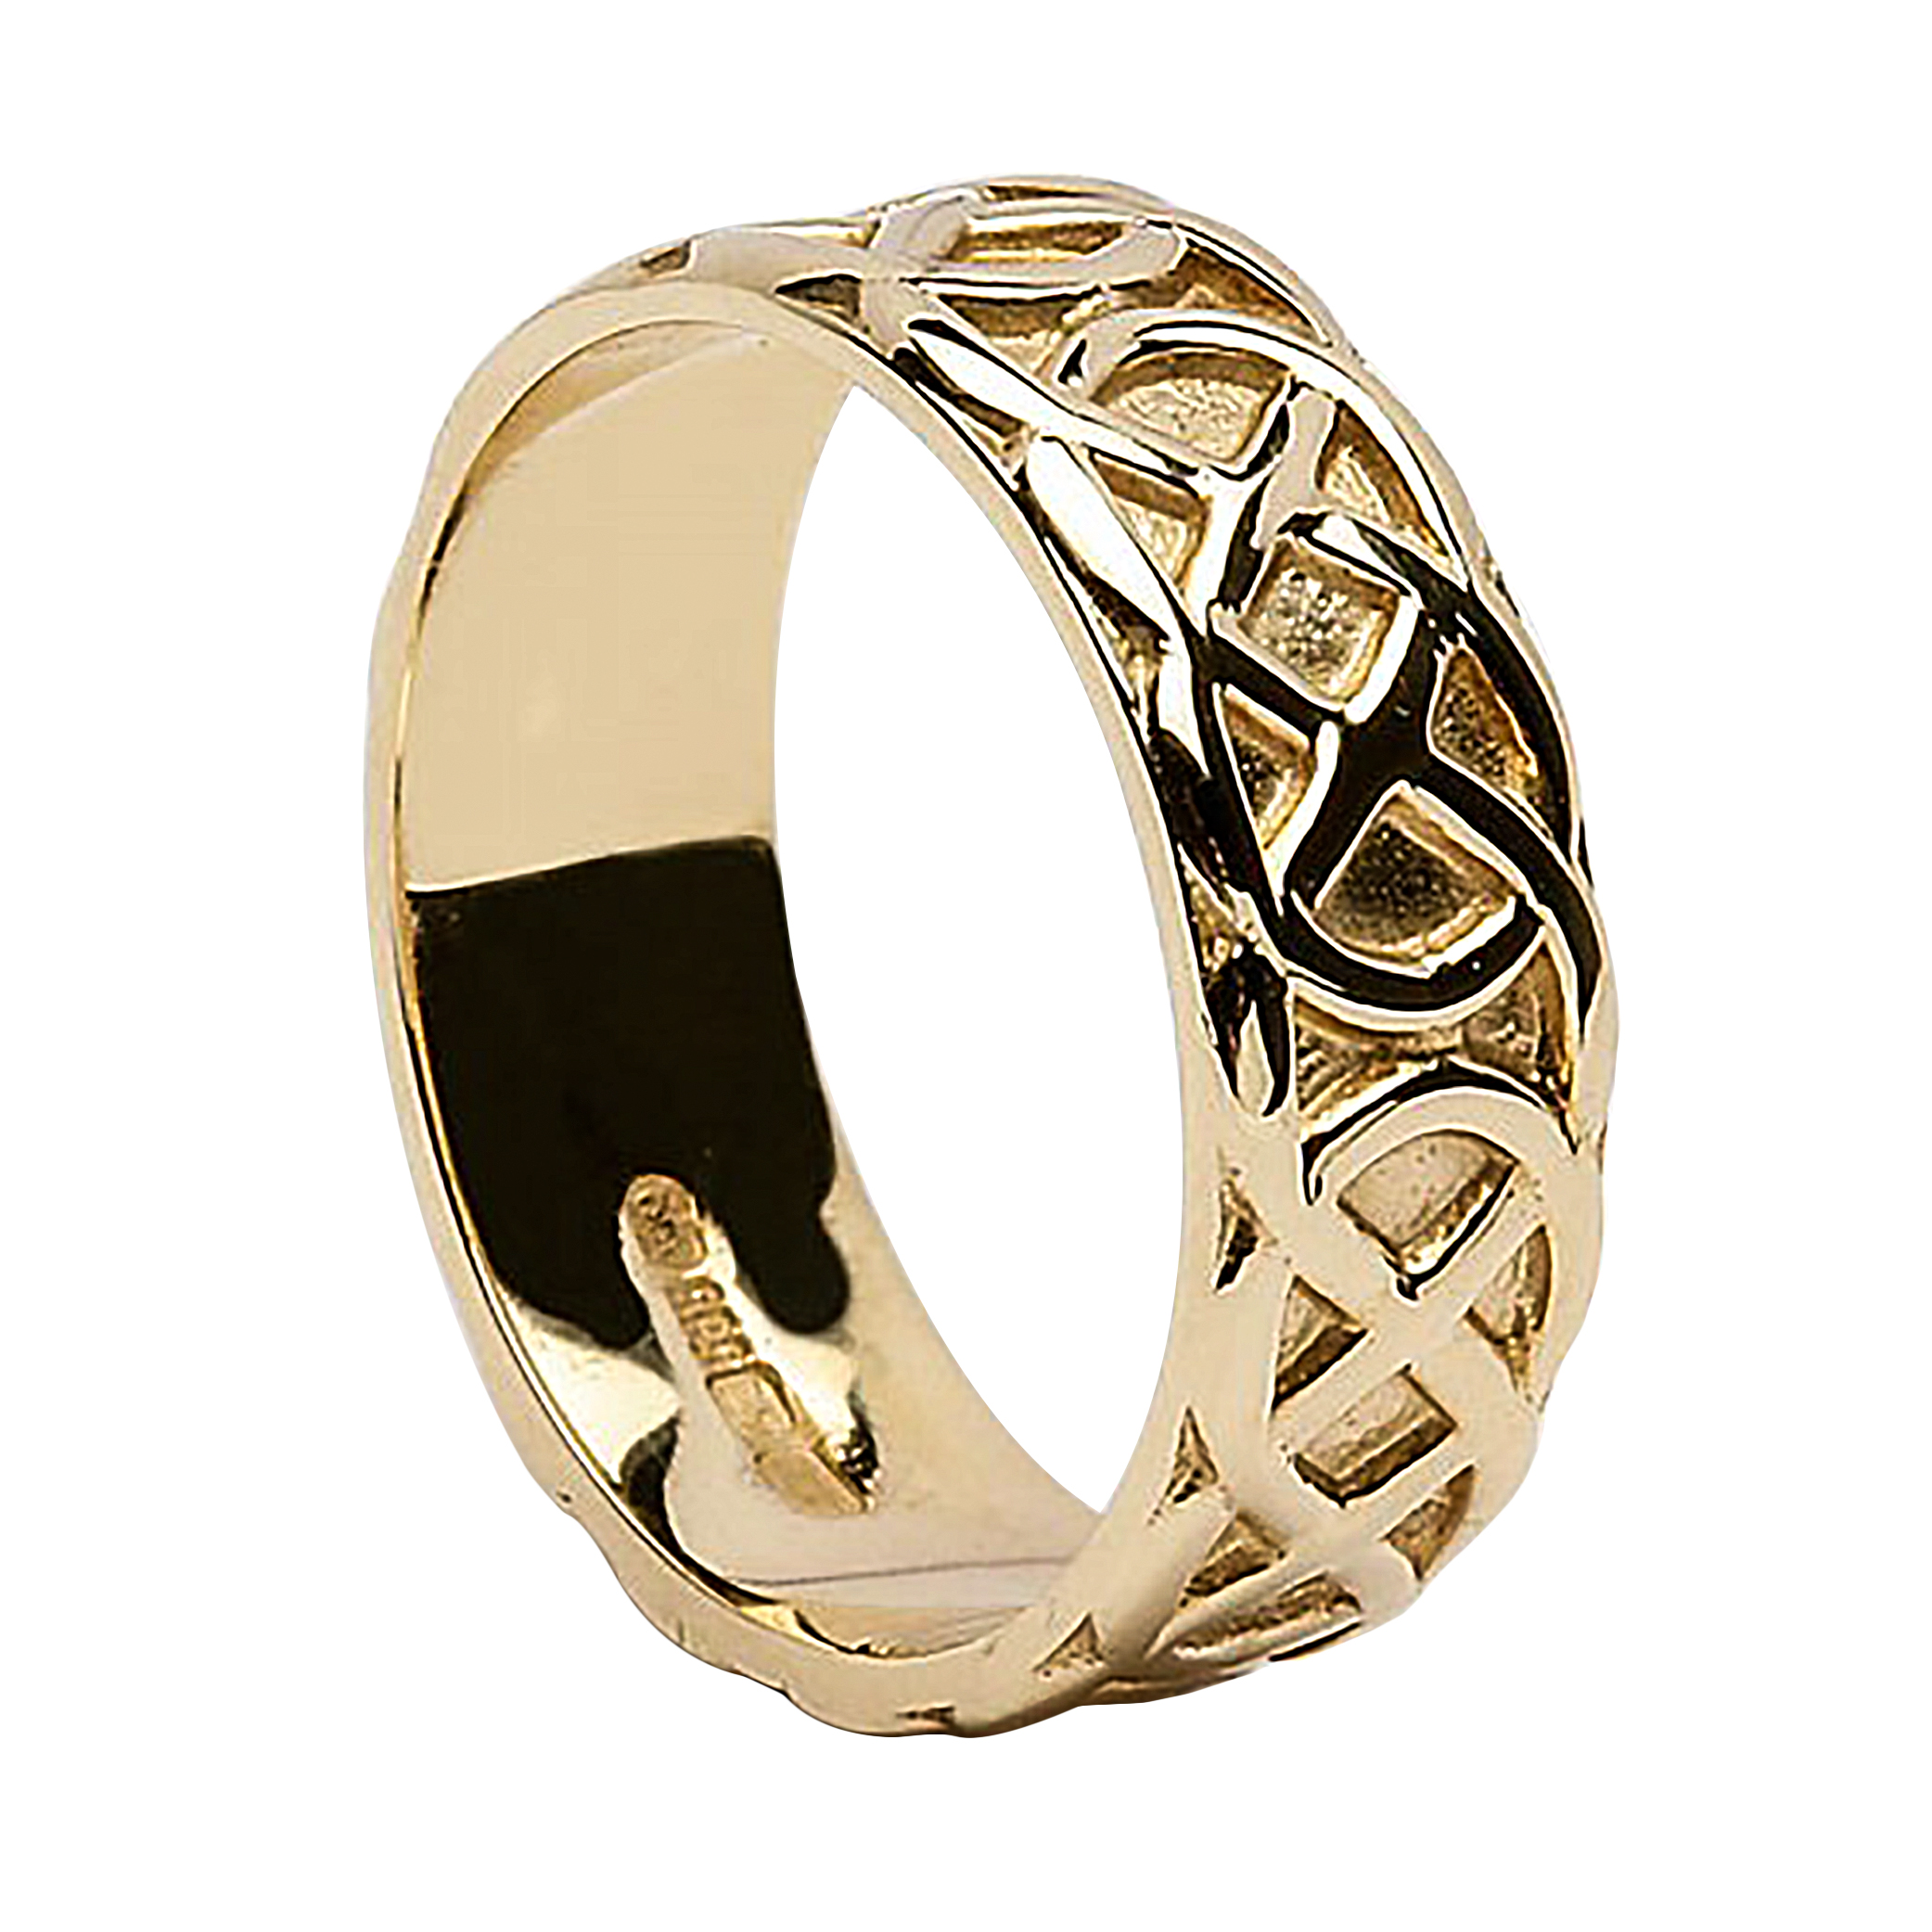 gaelic rings celtic of wedding diamond gold the ideas photo gallery claddagh ring fantastic white meaning